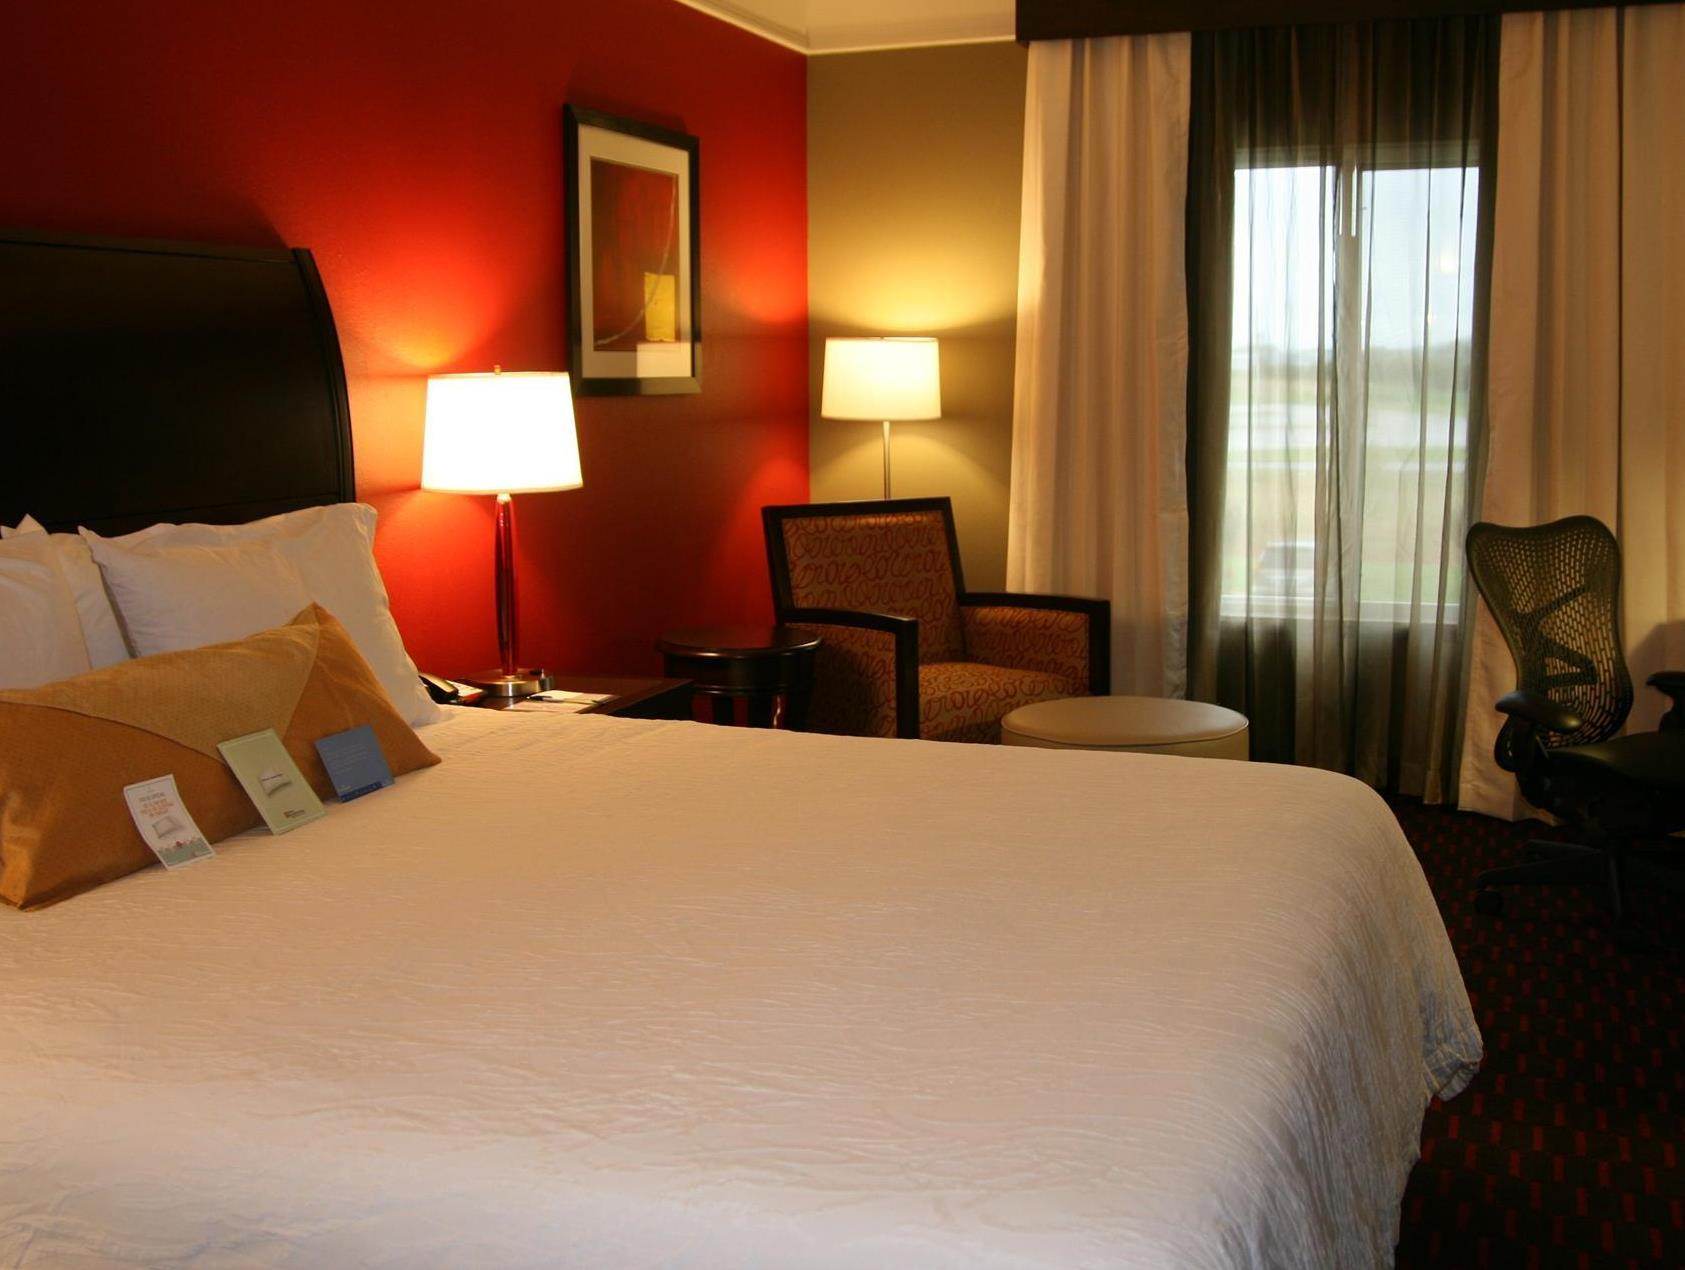 Best Price on Hilton Garden Inn Oxford Anniston in Oxford  AL    Reviews 1 King Bed   Guestroom Hilton Garden Inn Oxford Anniston